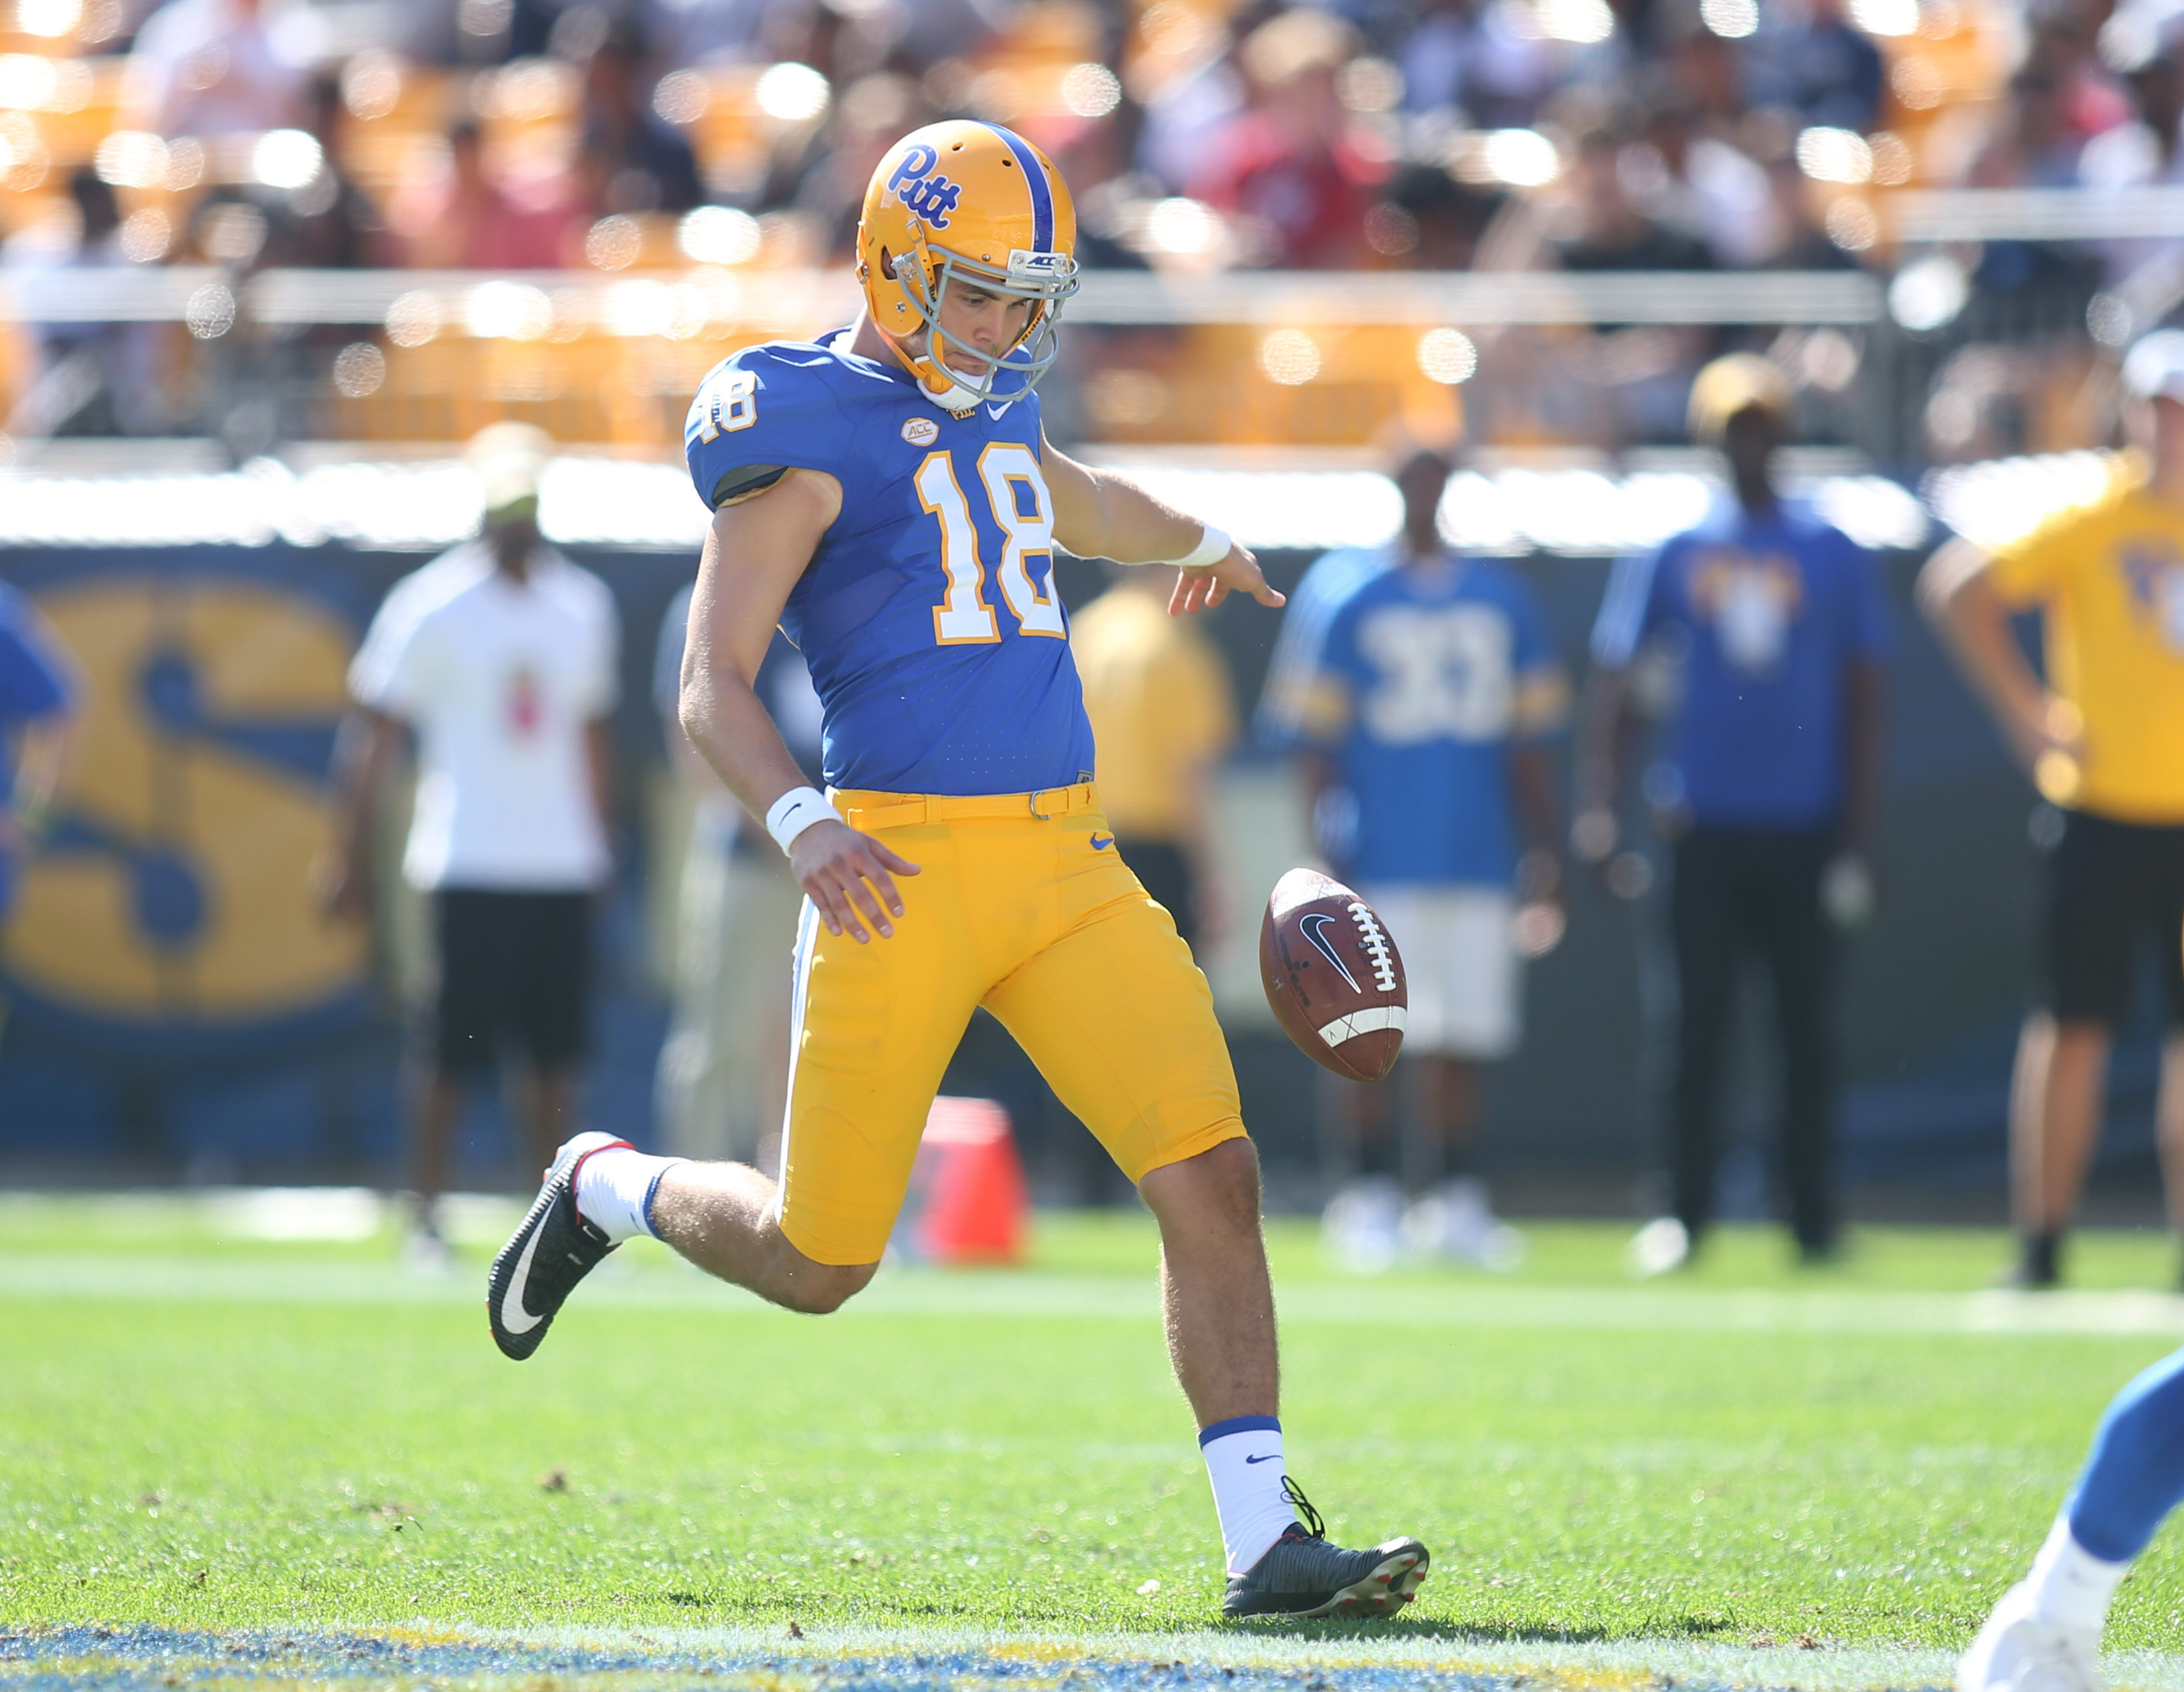 c2fed463e Chicago Bears sign Pitt punter Ryan Winslow as undrafted free agent. By  CardiacHill ...